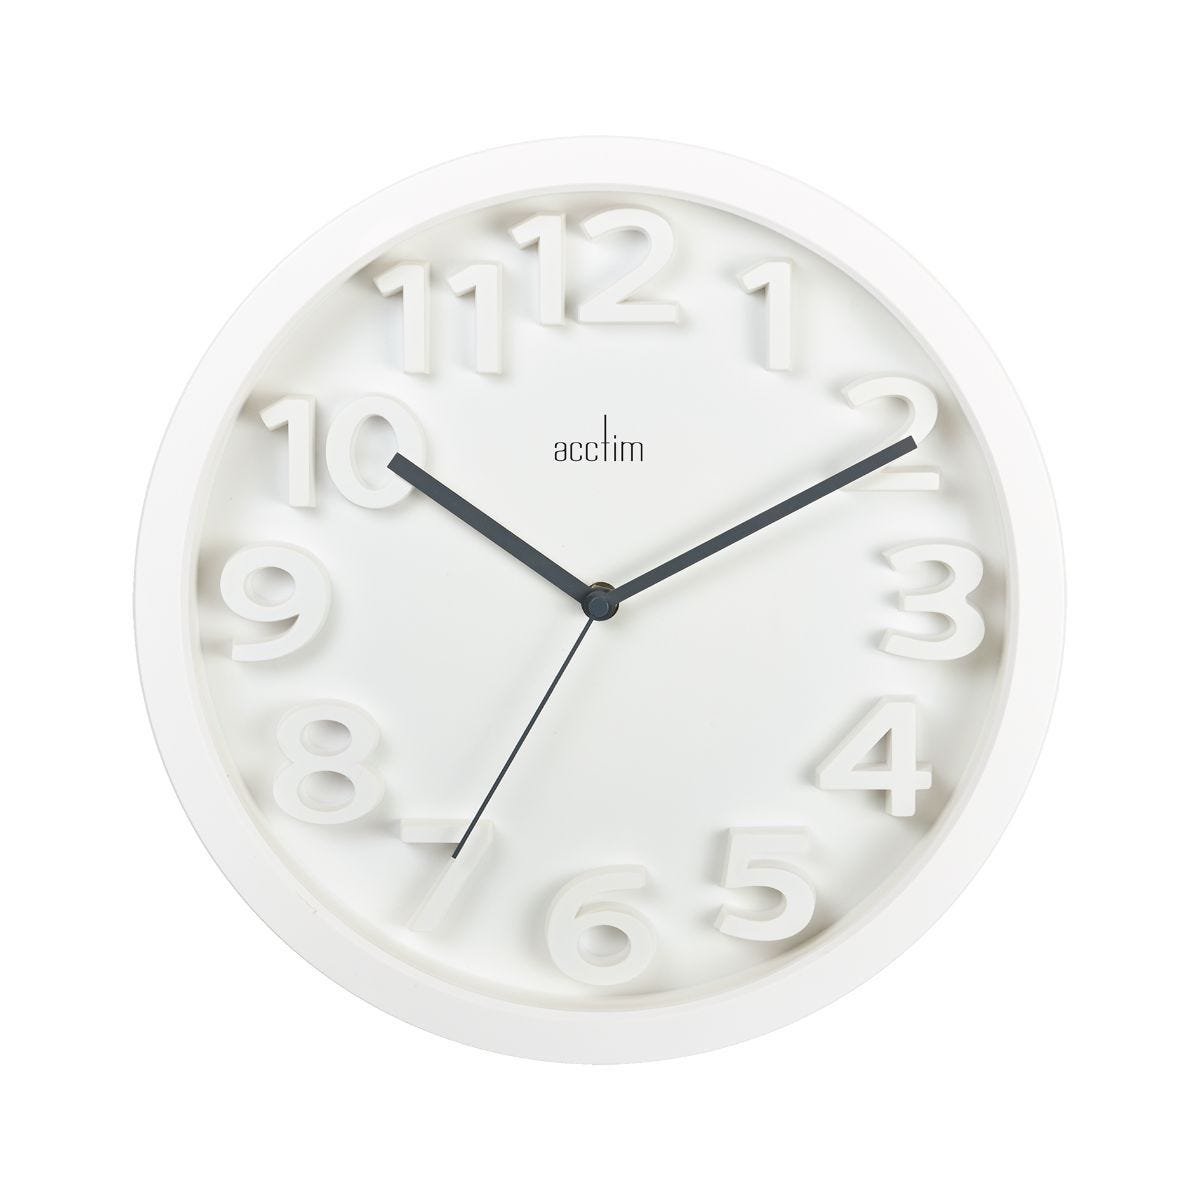 Image of Acctim Logann Raised Number Wall Clock, White